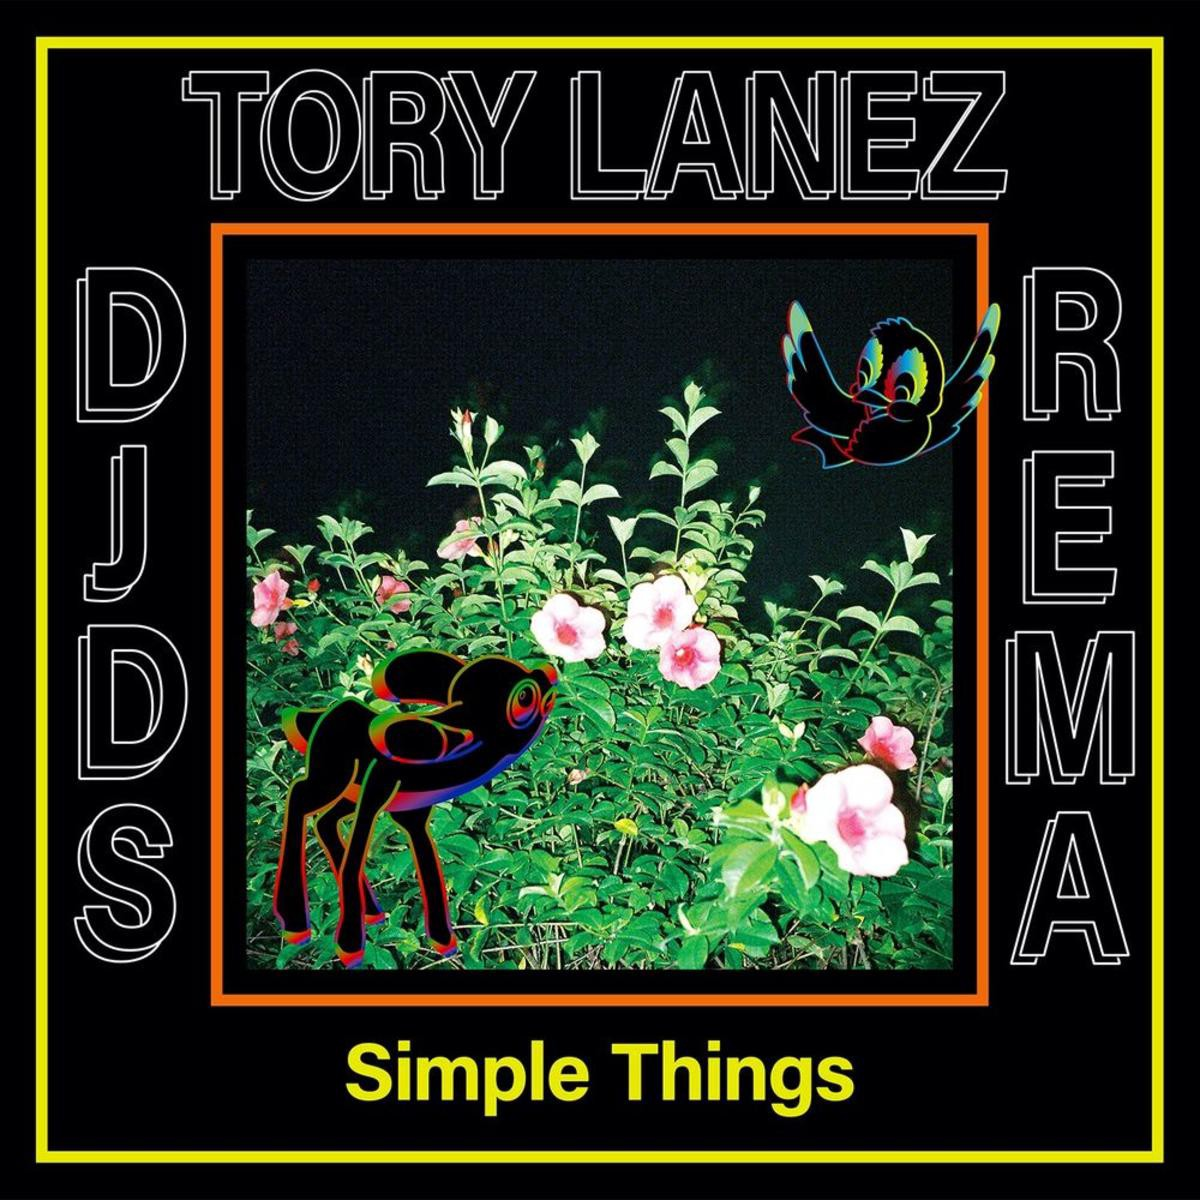 Fast Download: DJDS Ft Rema & Tory Lanez – Simple Things